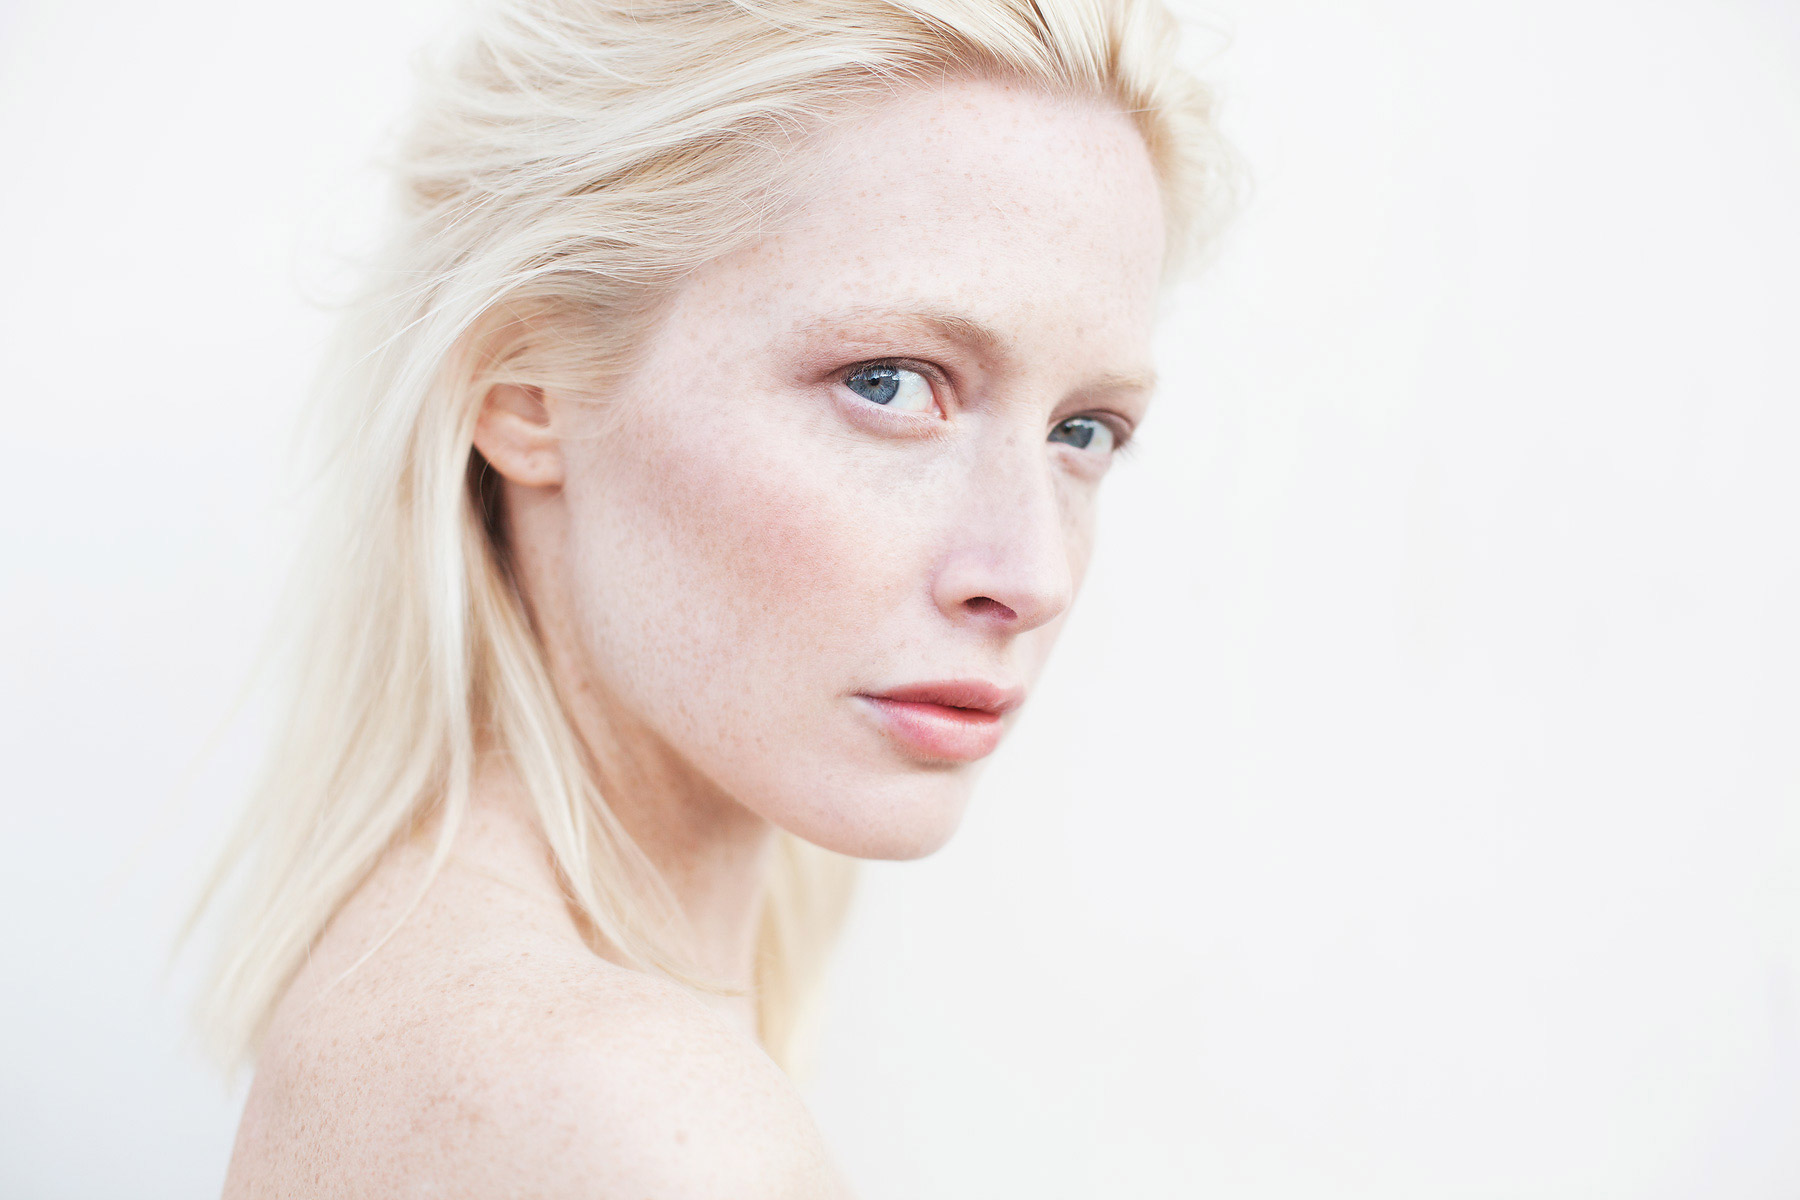 Janelle Manning, photo by Carin Olsson